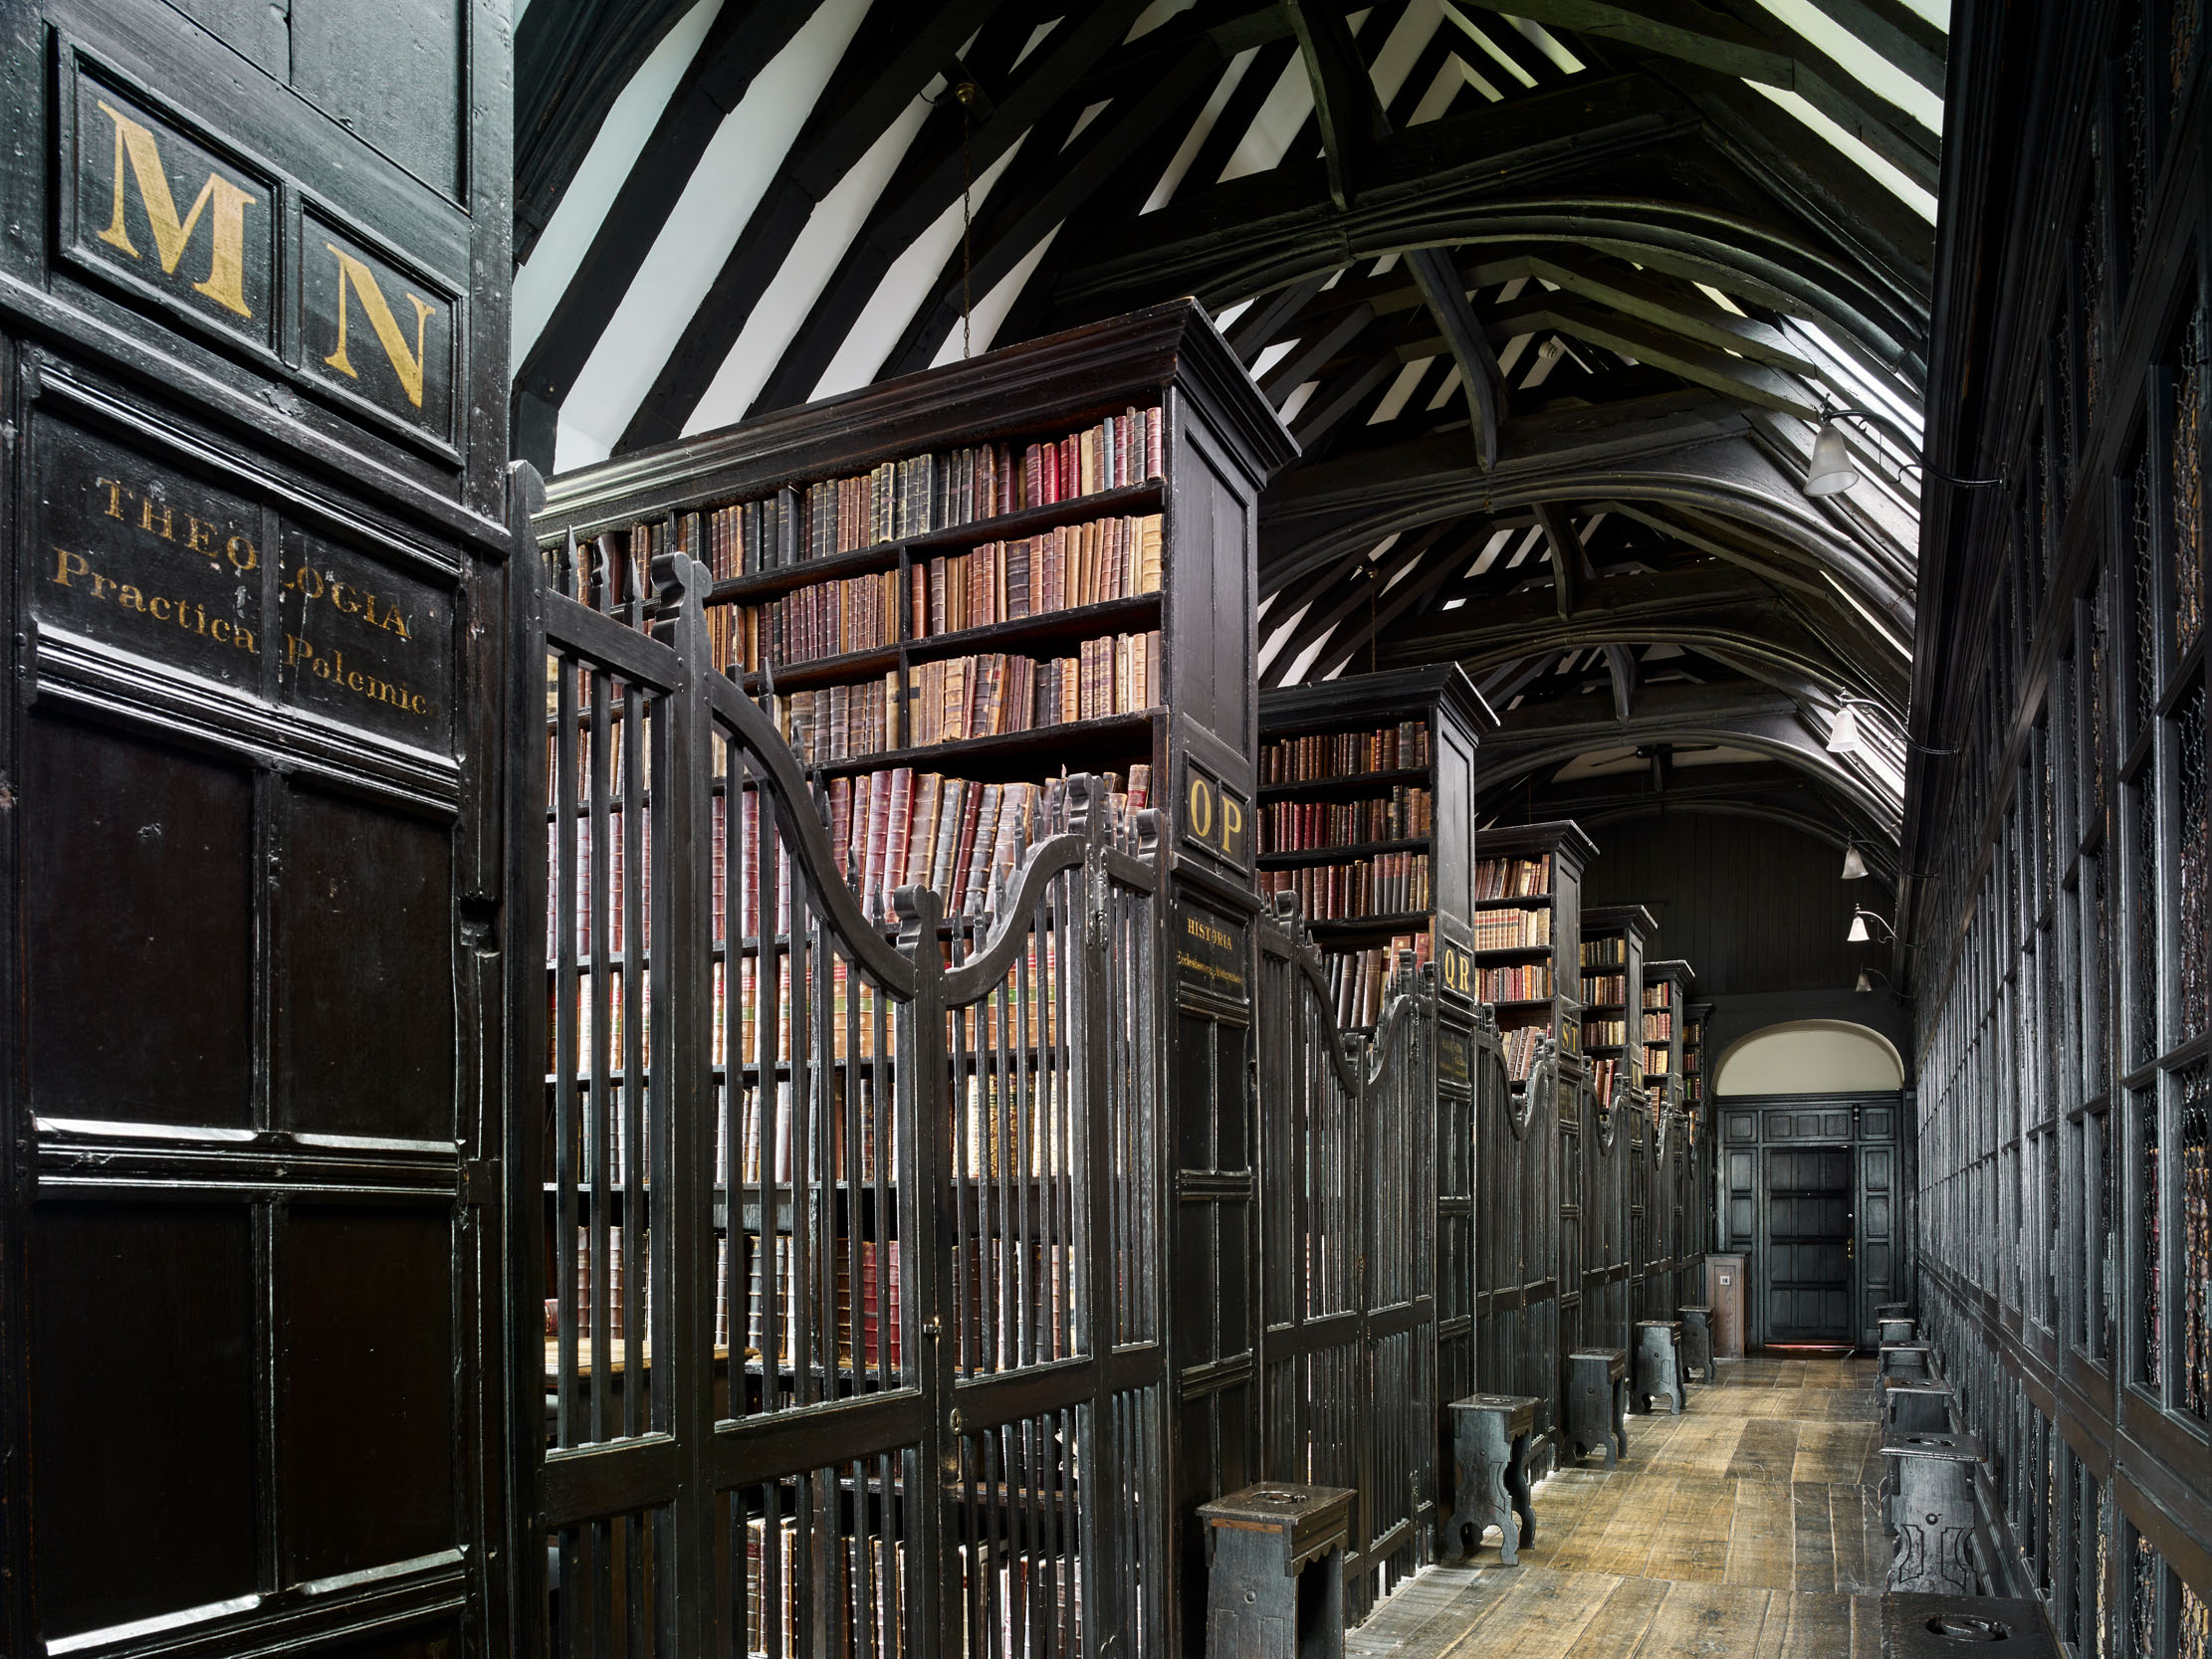 Chetham's: Inside the oldest public library in the English-speaking world